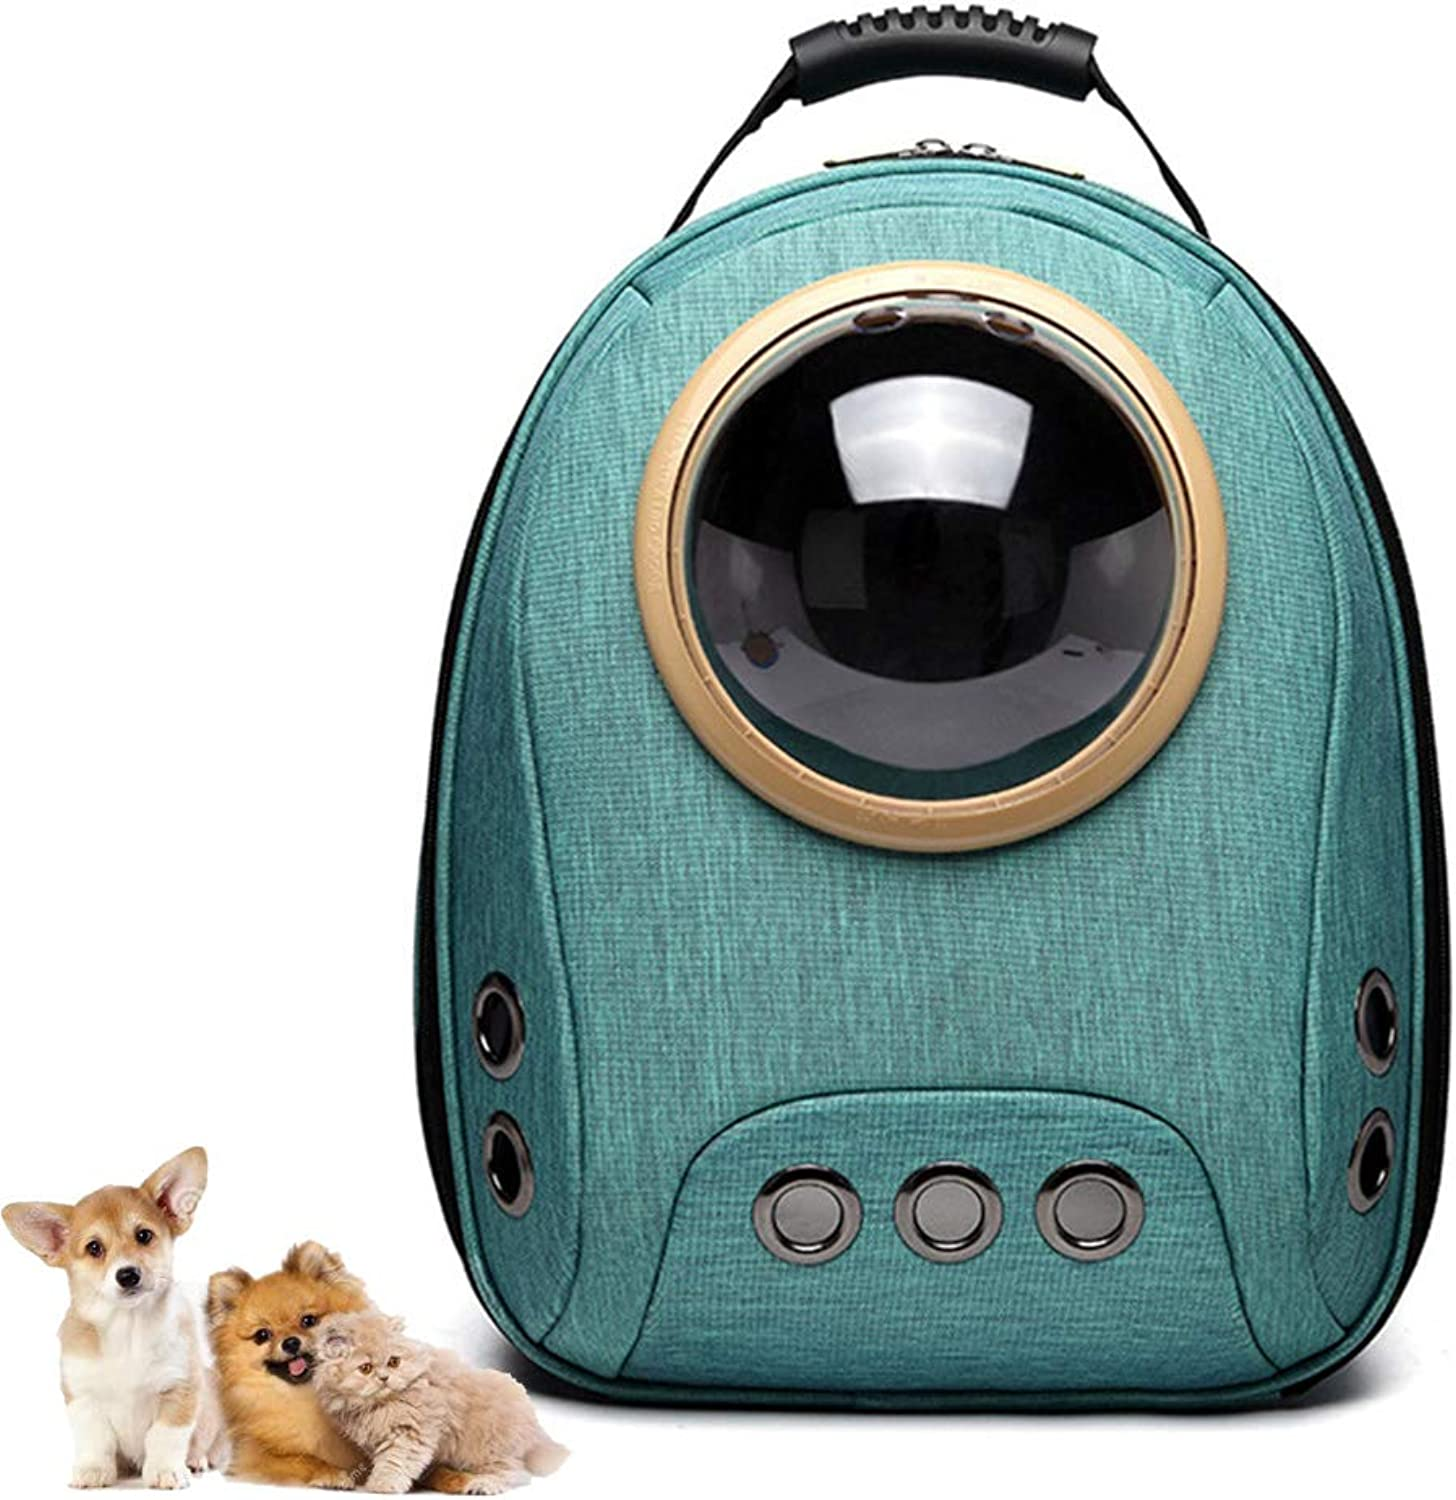 Pet Backpack 360 Degree Transparent Space Capsule Portable Waterproof Breathable Kitty Puppy Backpack (Green)